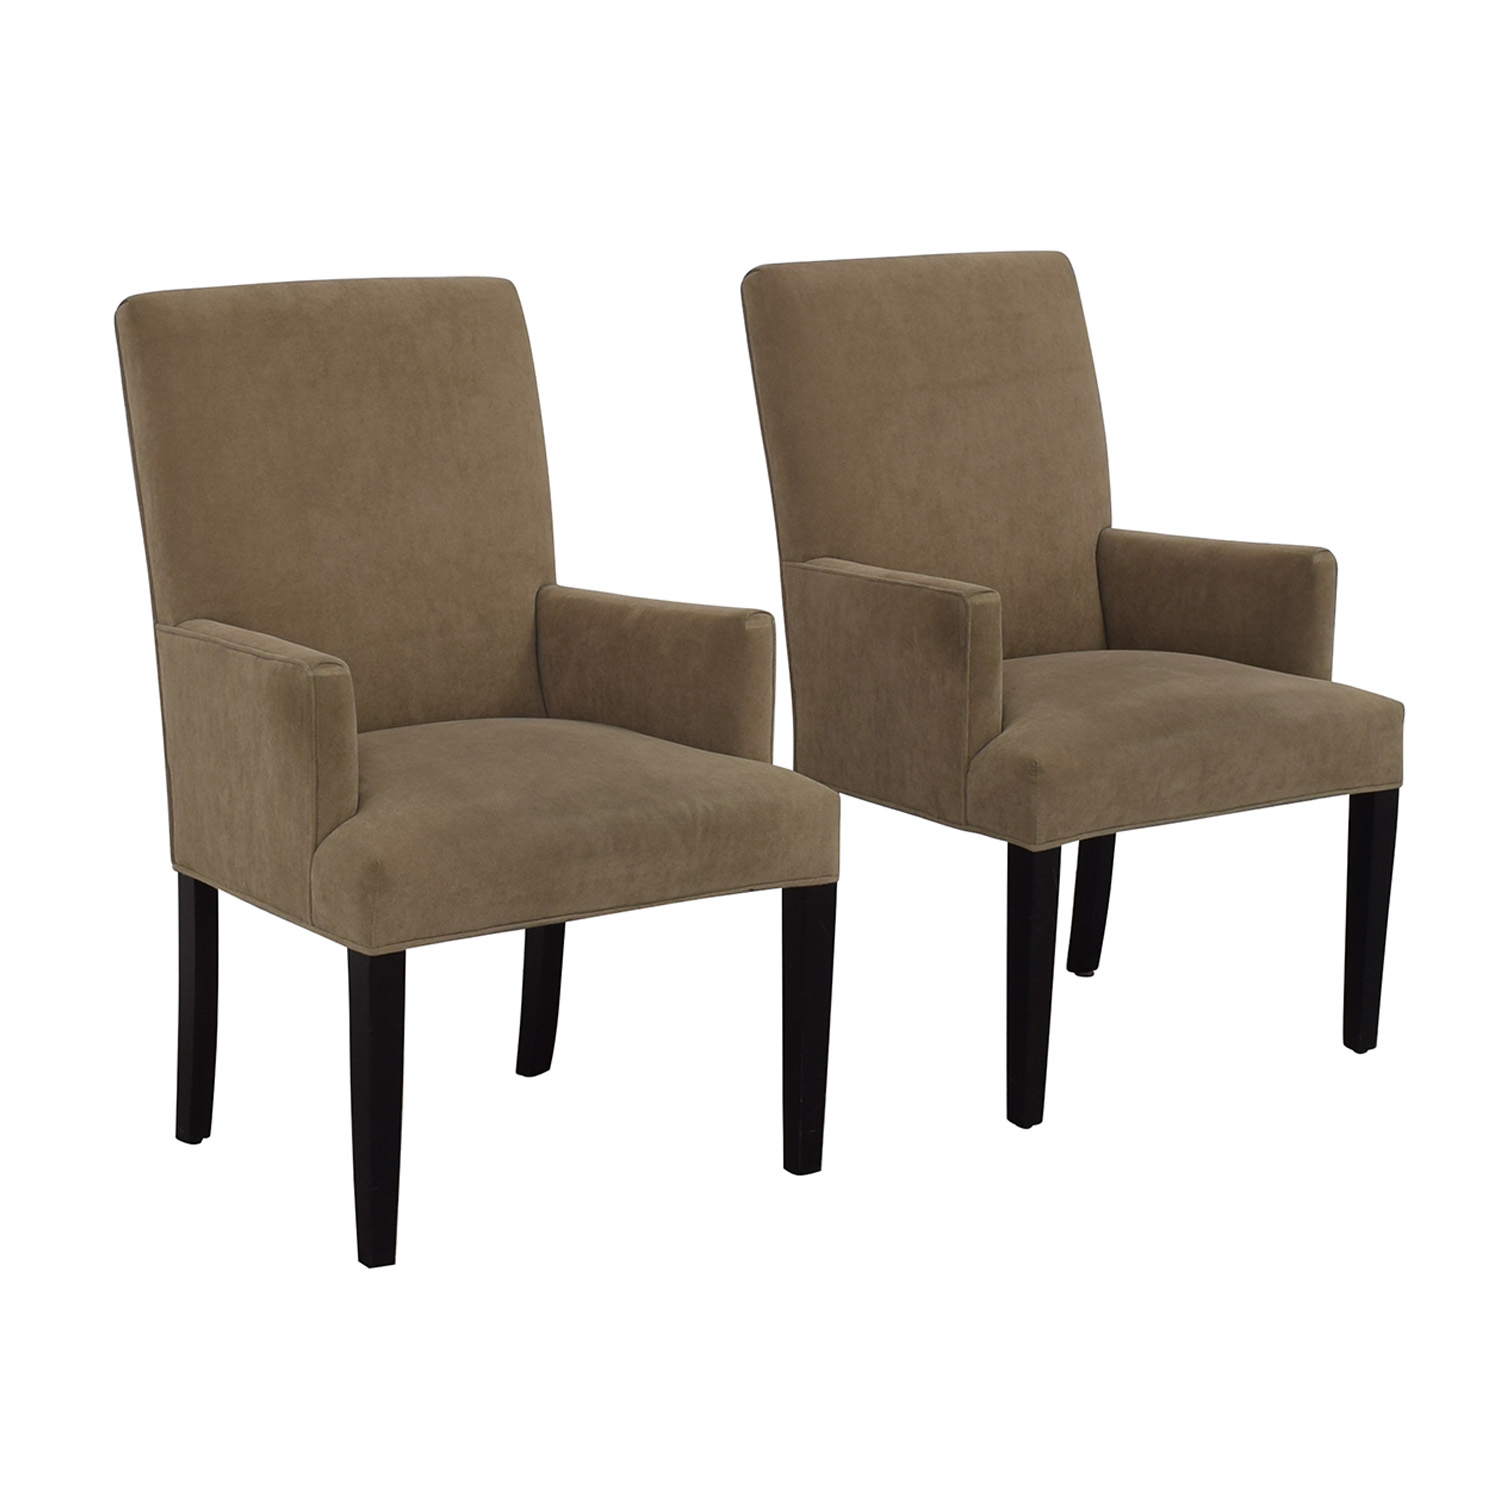 Crate & Barrel Crate & Barrel Tan Dining Chairs price